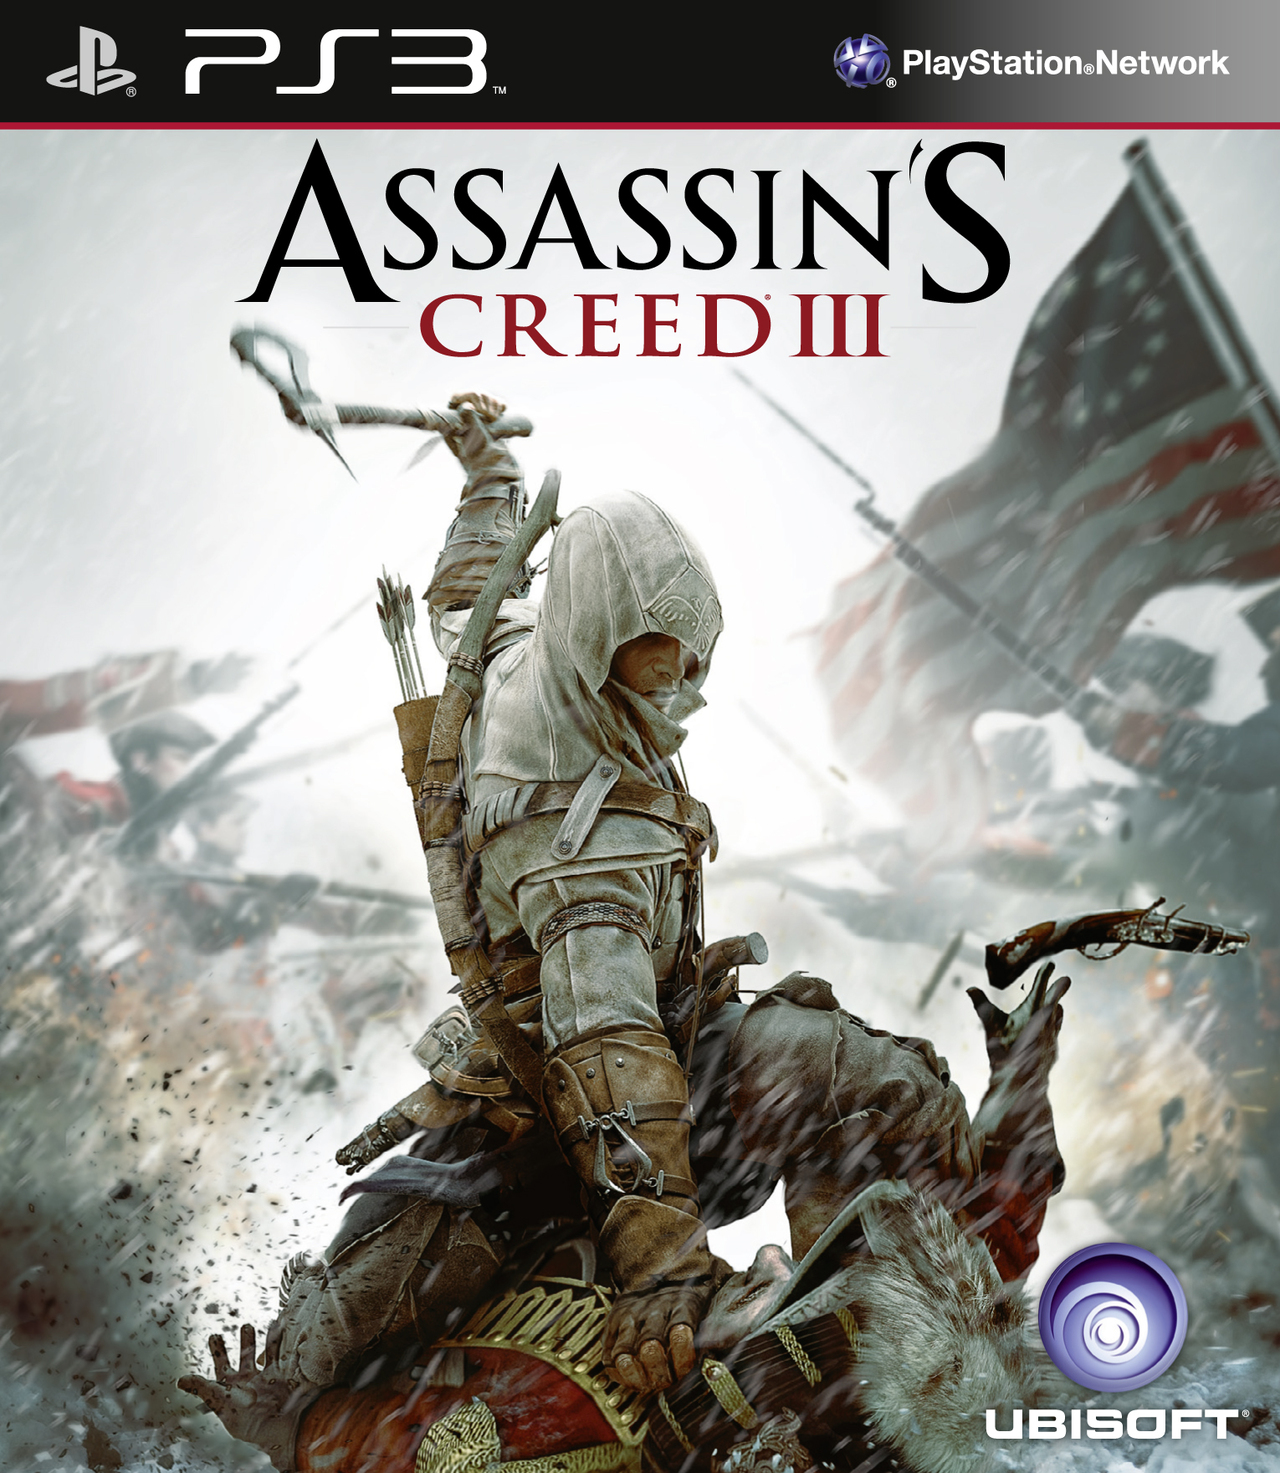 Assassin's Creed III + Eboot Patch. [PlayStation 3] [MULTI]